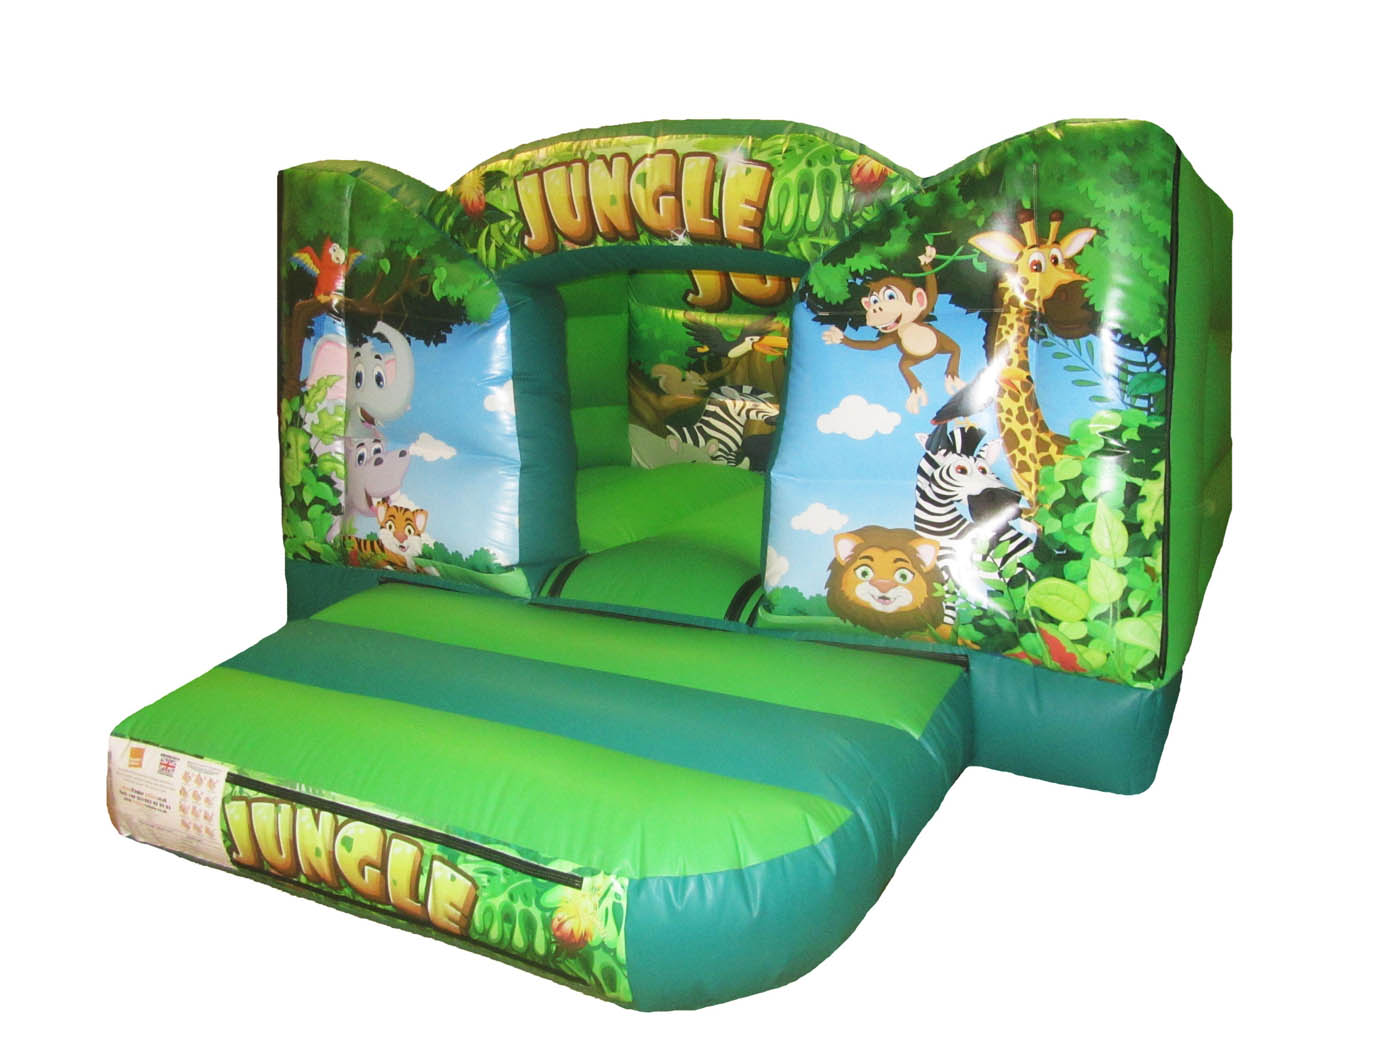 Jungle Printed Artwork Commercial Bouncy Castle for Sale